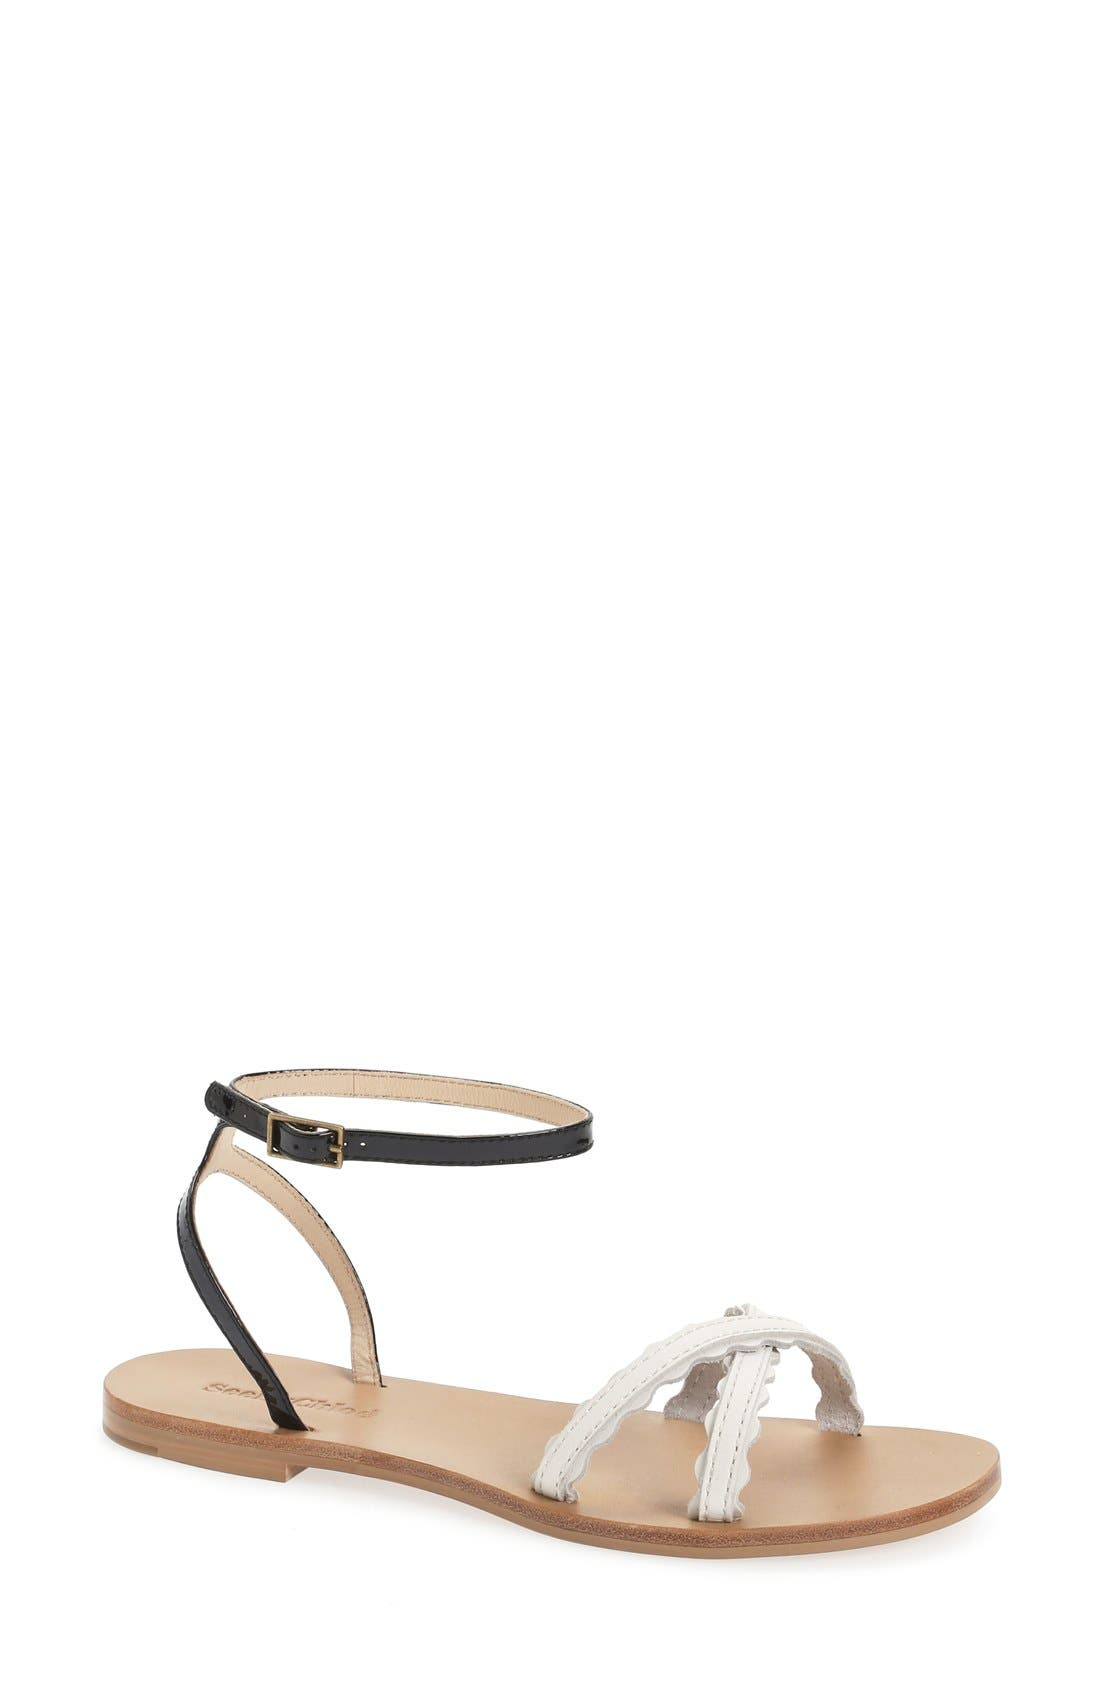 Alternate Image 1 Selected - See by Chloé Flat Sandal